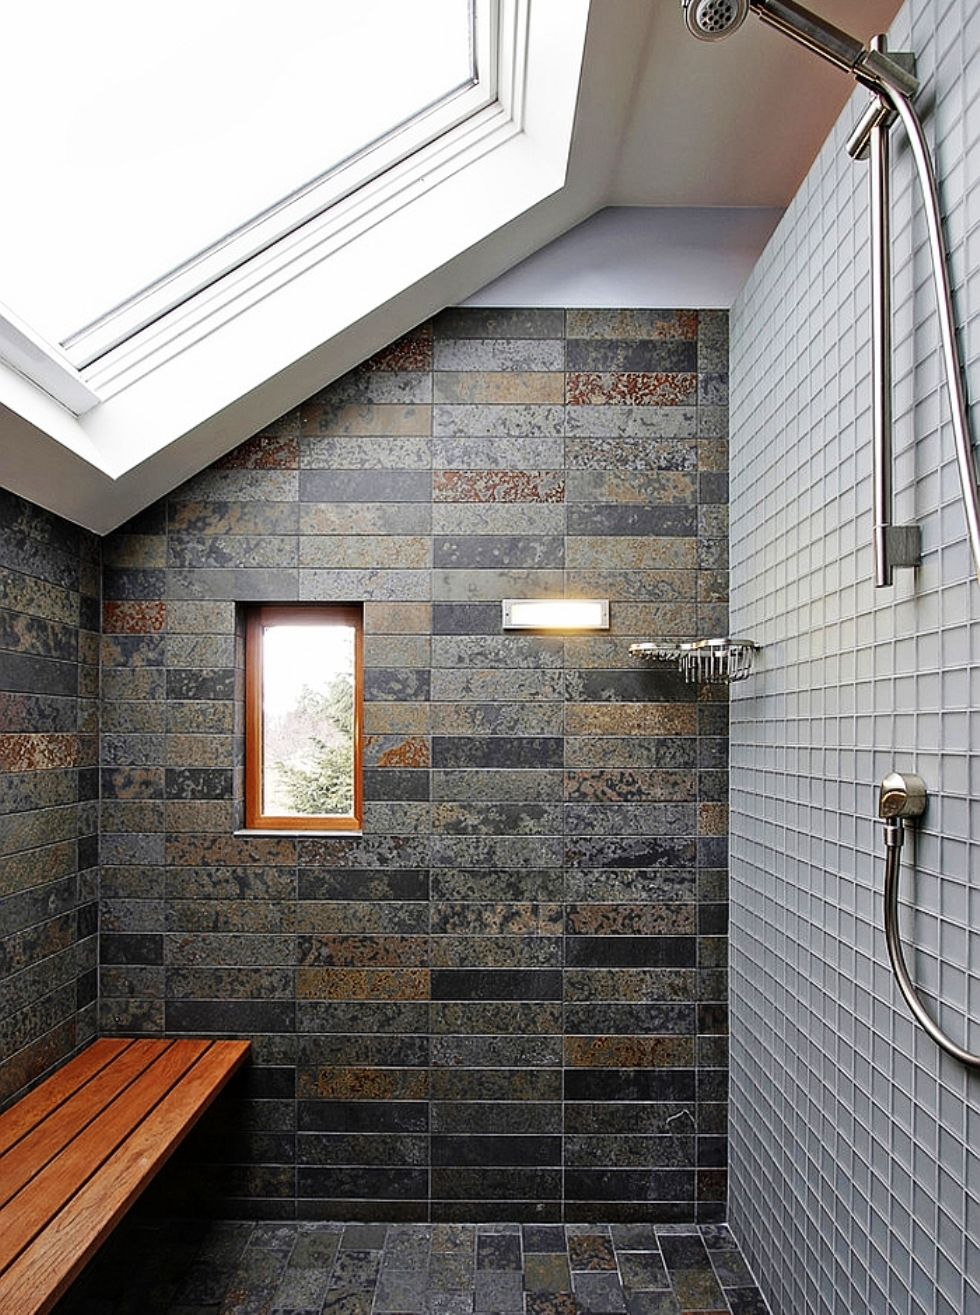 27 Incredible Raw Stone Bathroom Design Ideas: Bathroom: Small Shower Corner With Ample Natural Light Of